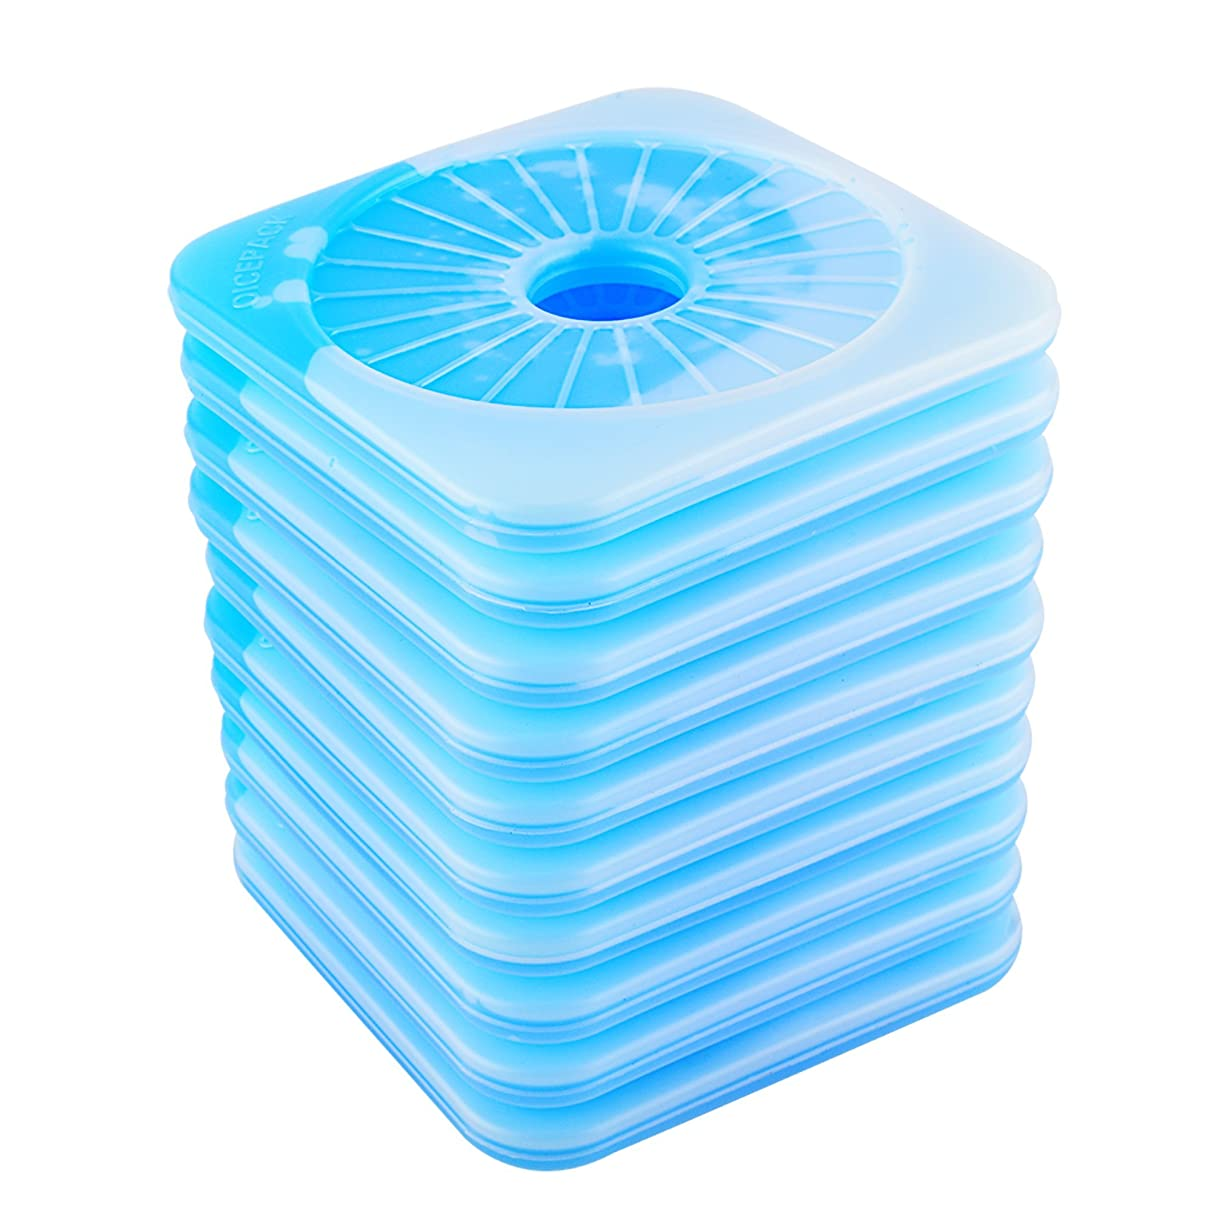 OICEPACK Ice Pack Ice Packs for Lunch Box Cool Packs for Cooler Thin Ice Packs Fits Lunch Bags Gel Ice Packs Stay Cold for Long Time Freezable Cooler Packs Freezer Packs keeps Food Cold Fresh (10)